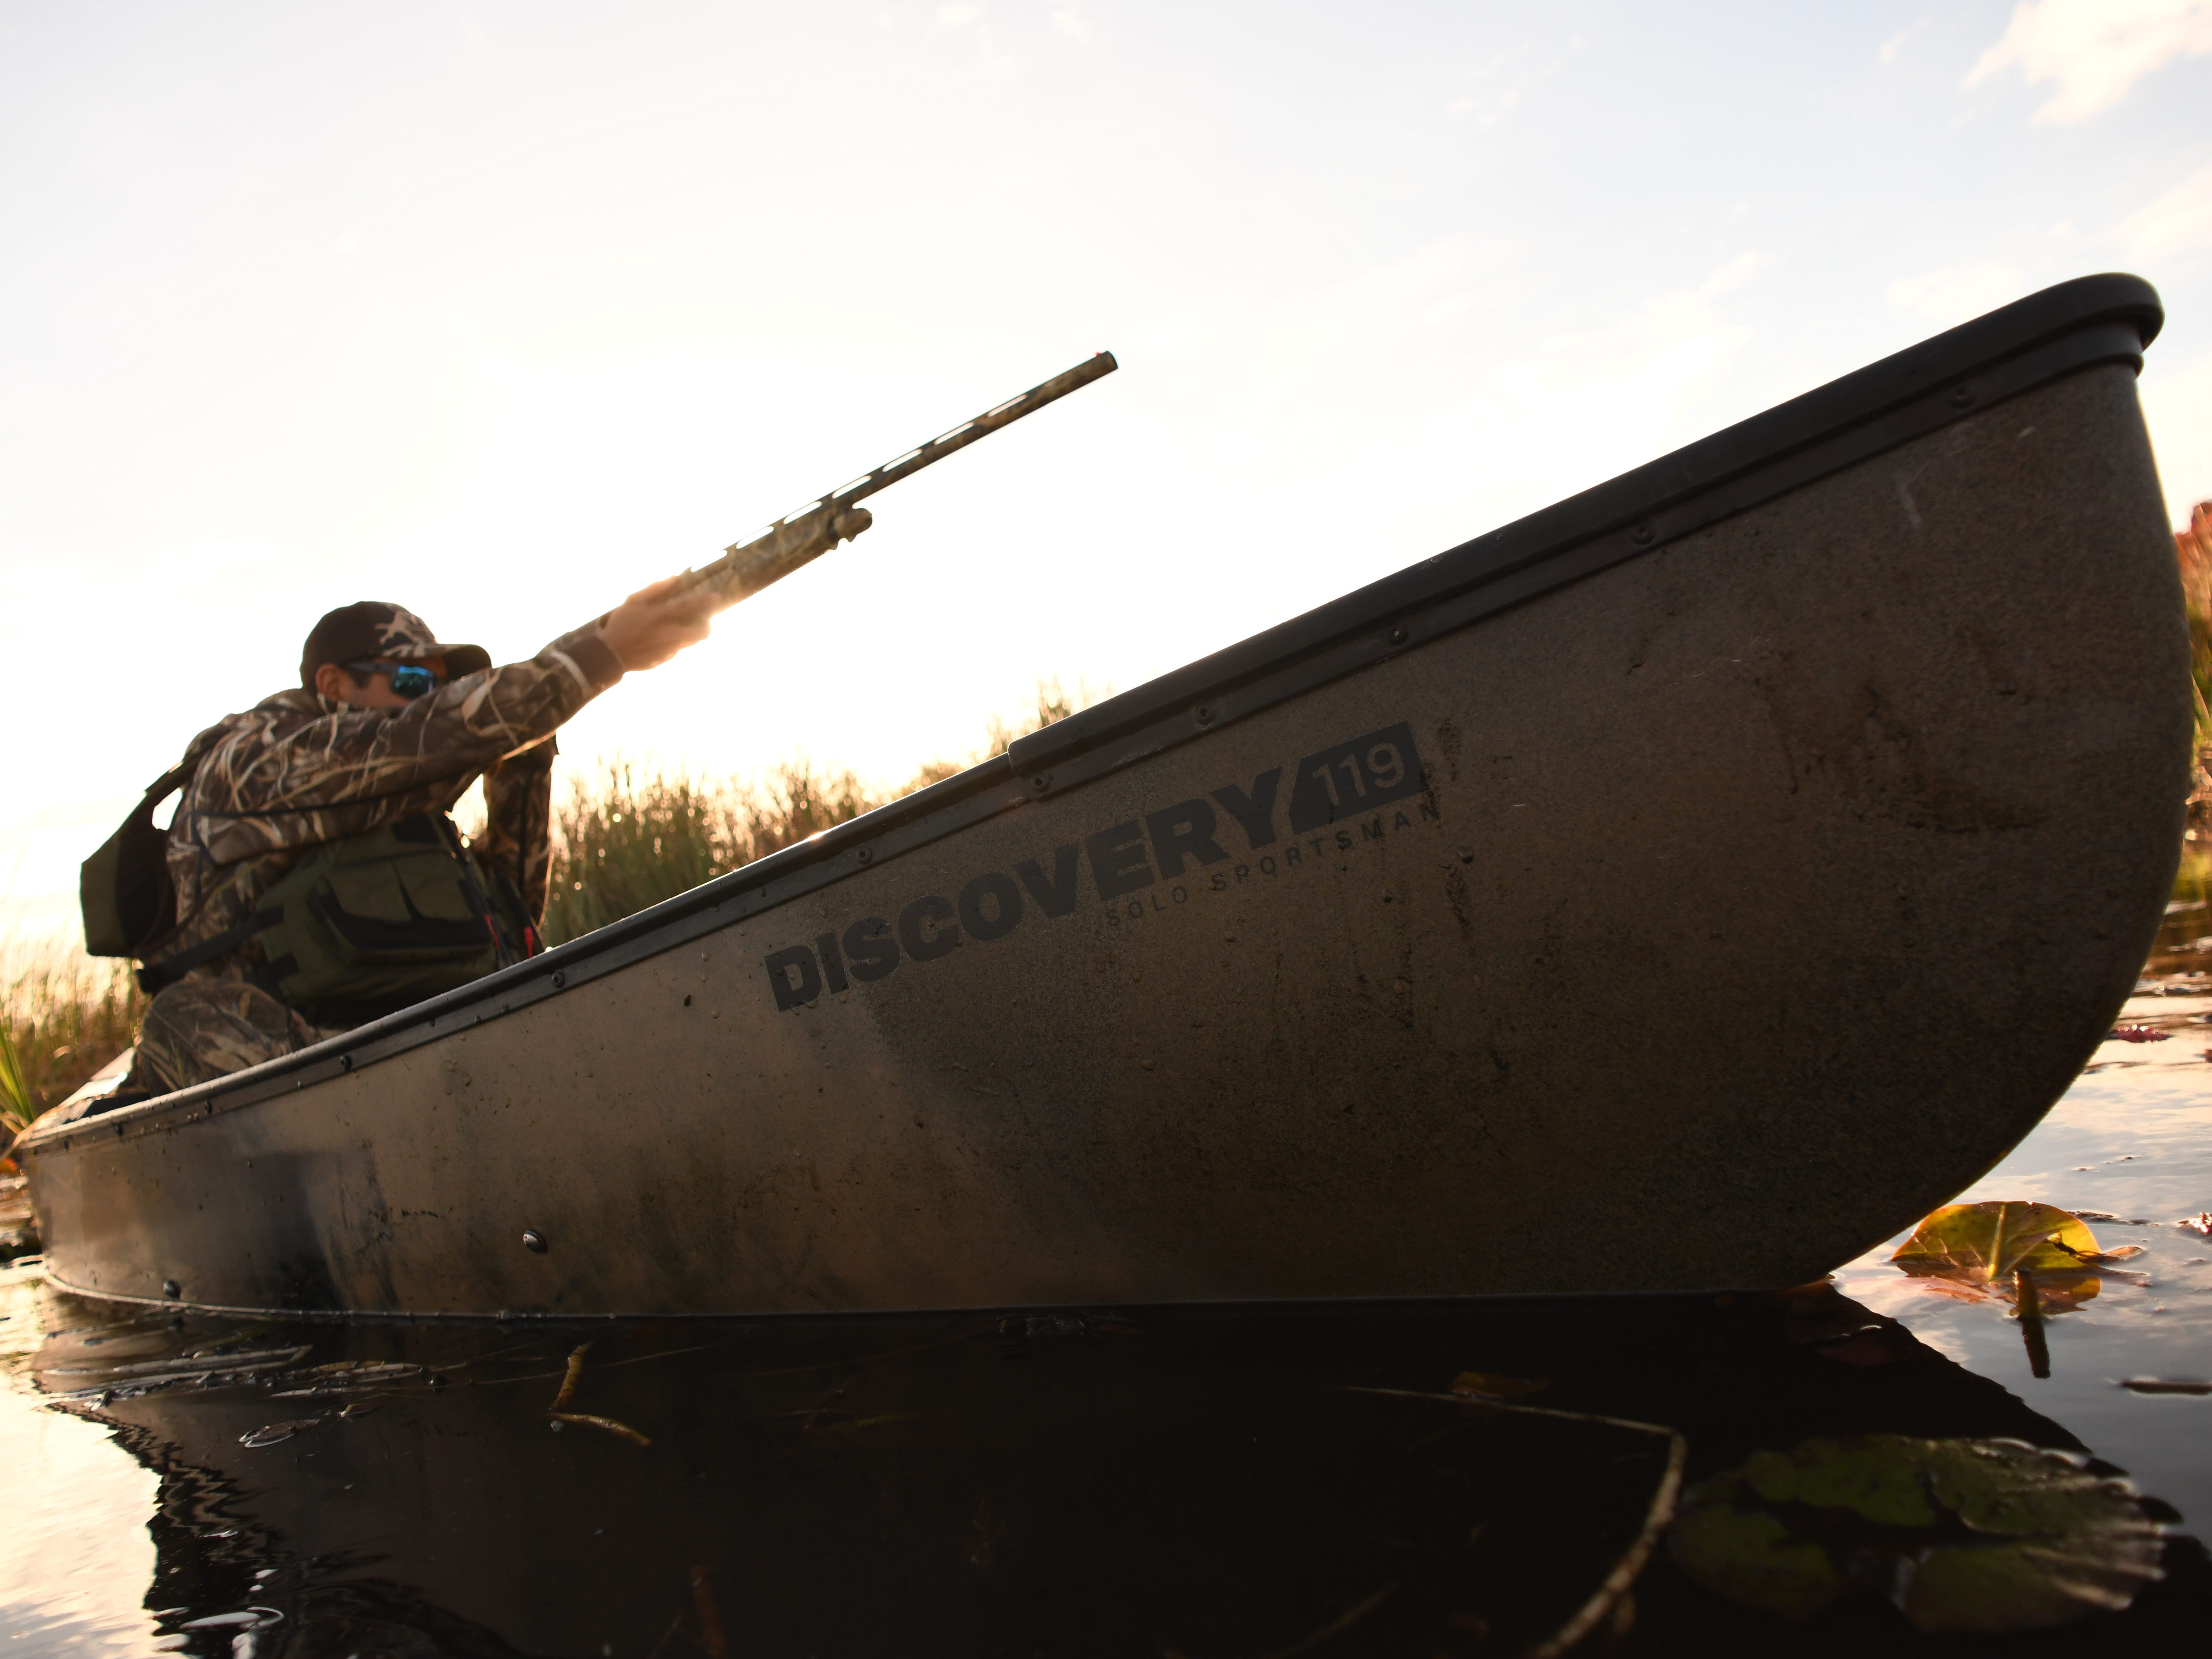 At 11 feet, 7 inches long with a 32 1/2-inch beam, the Solo Sportsman is stable enough to provide an excellent casting and shooting platform while proving easy to paddle.